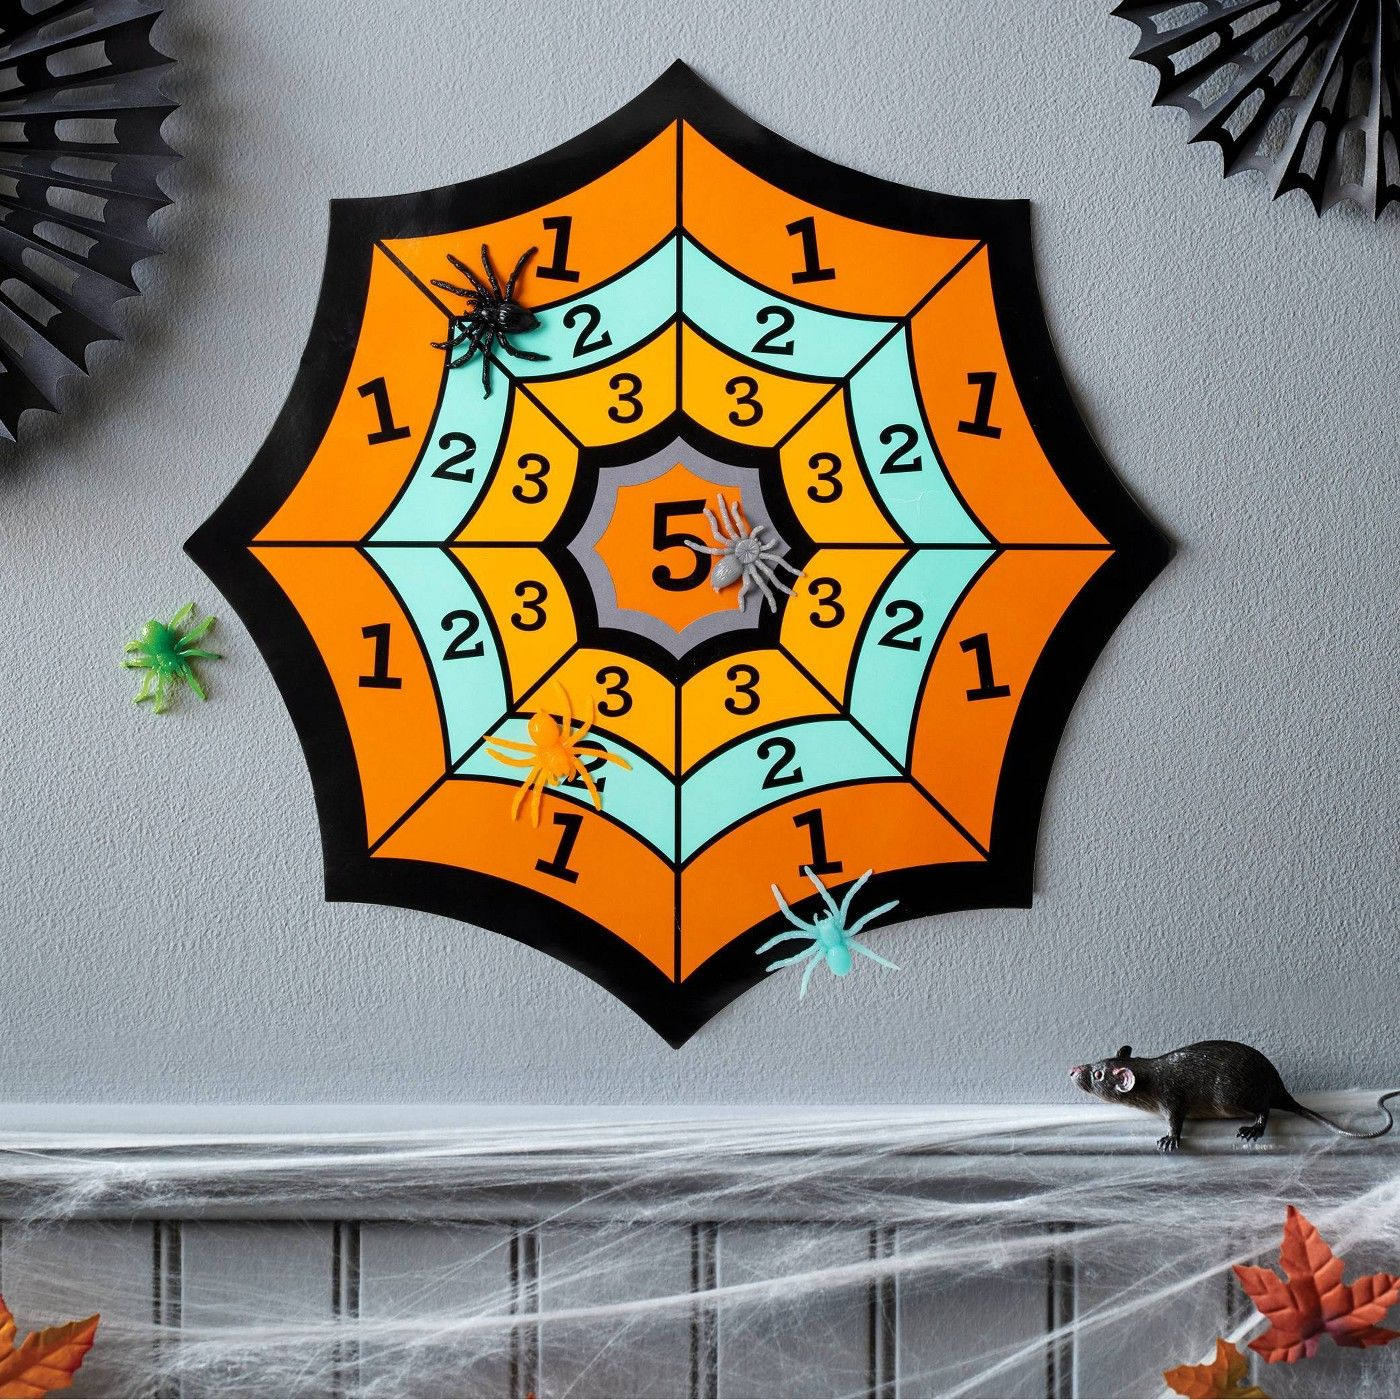 Spider Web Splat Game Halloween Party Kit (with 5 Spiders